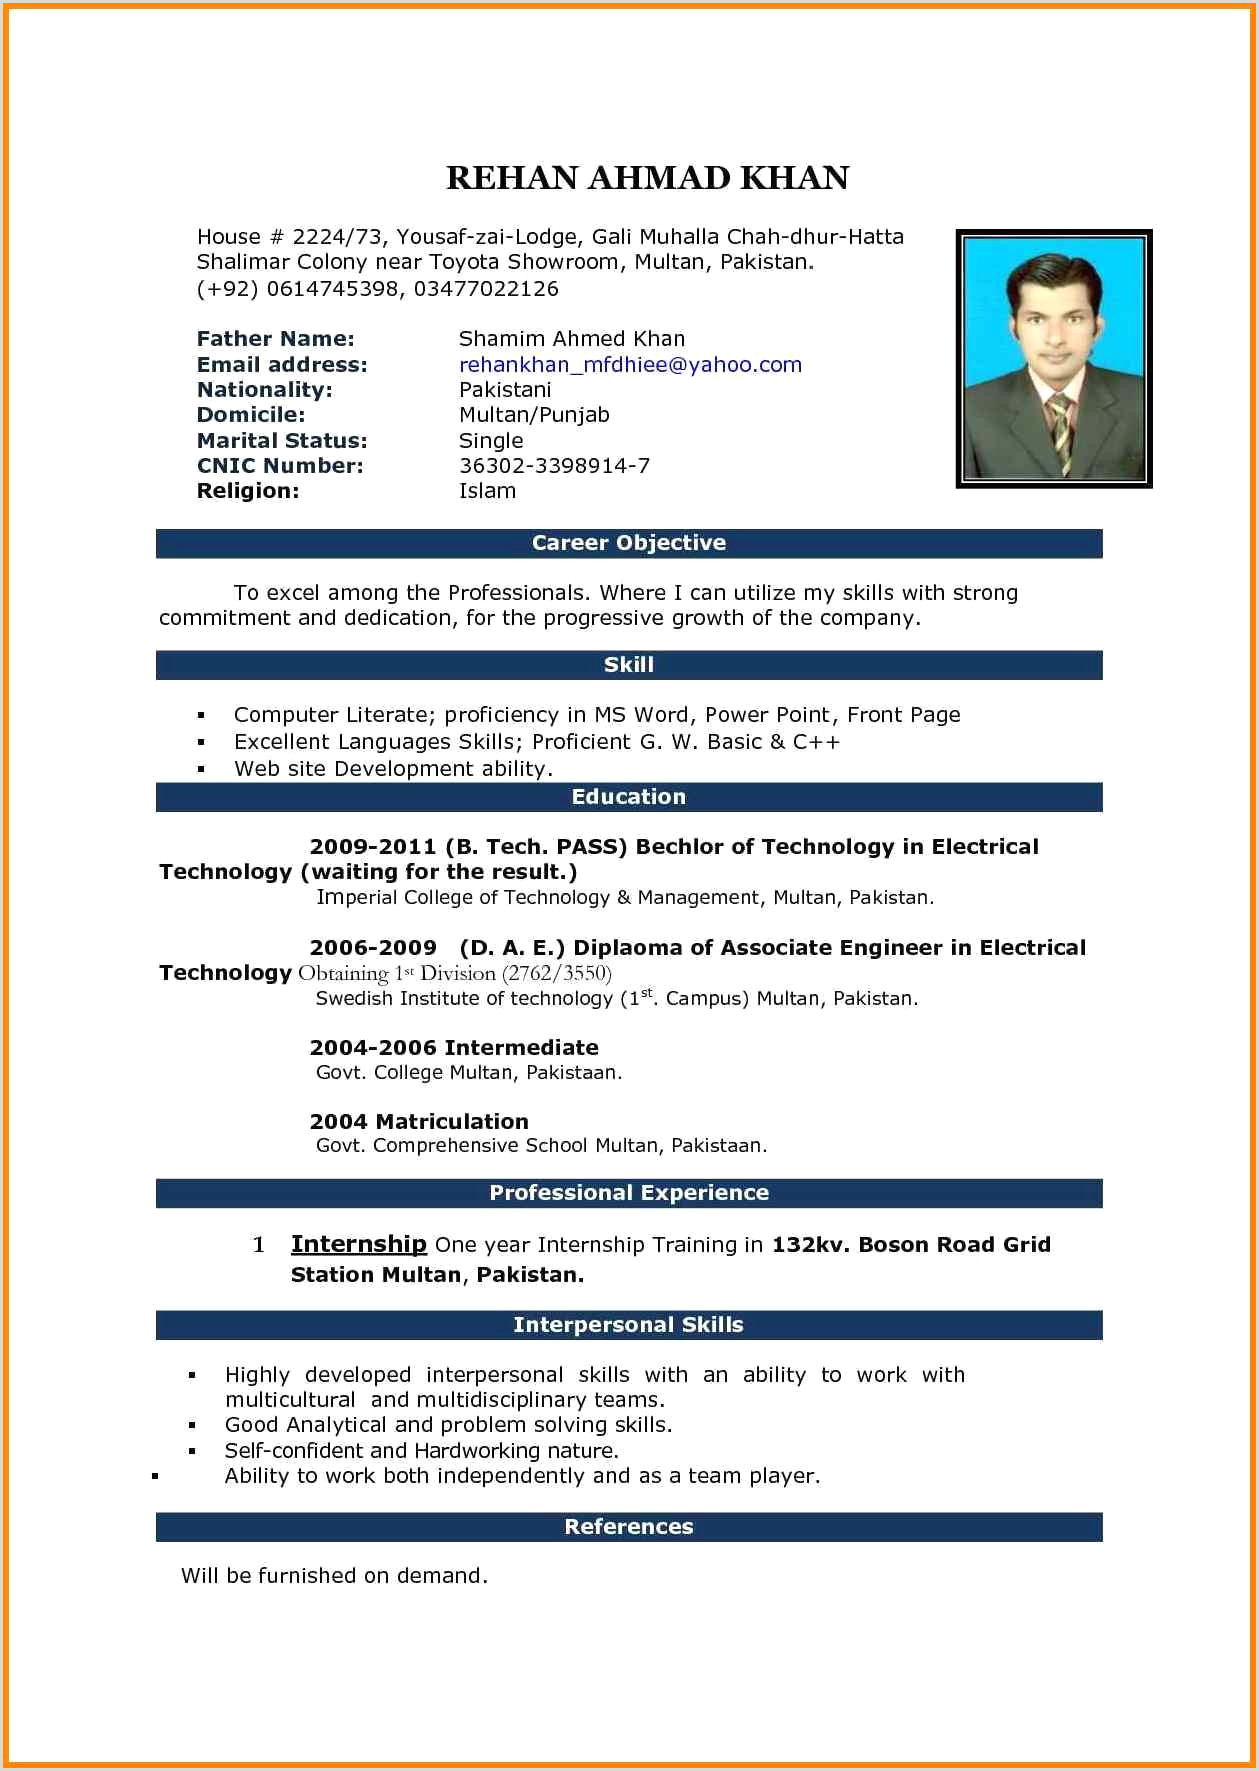 Resume Format Download In Ms Word For Fresher Resume Format Download In Ms Word 2013